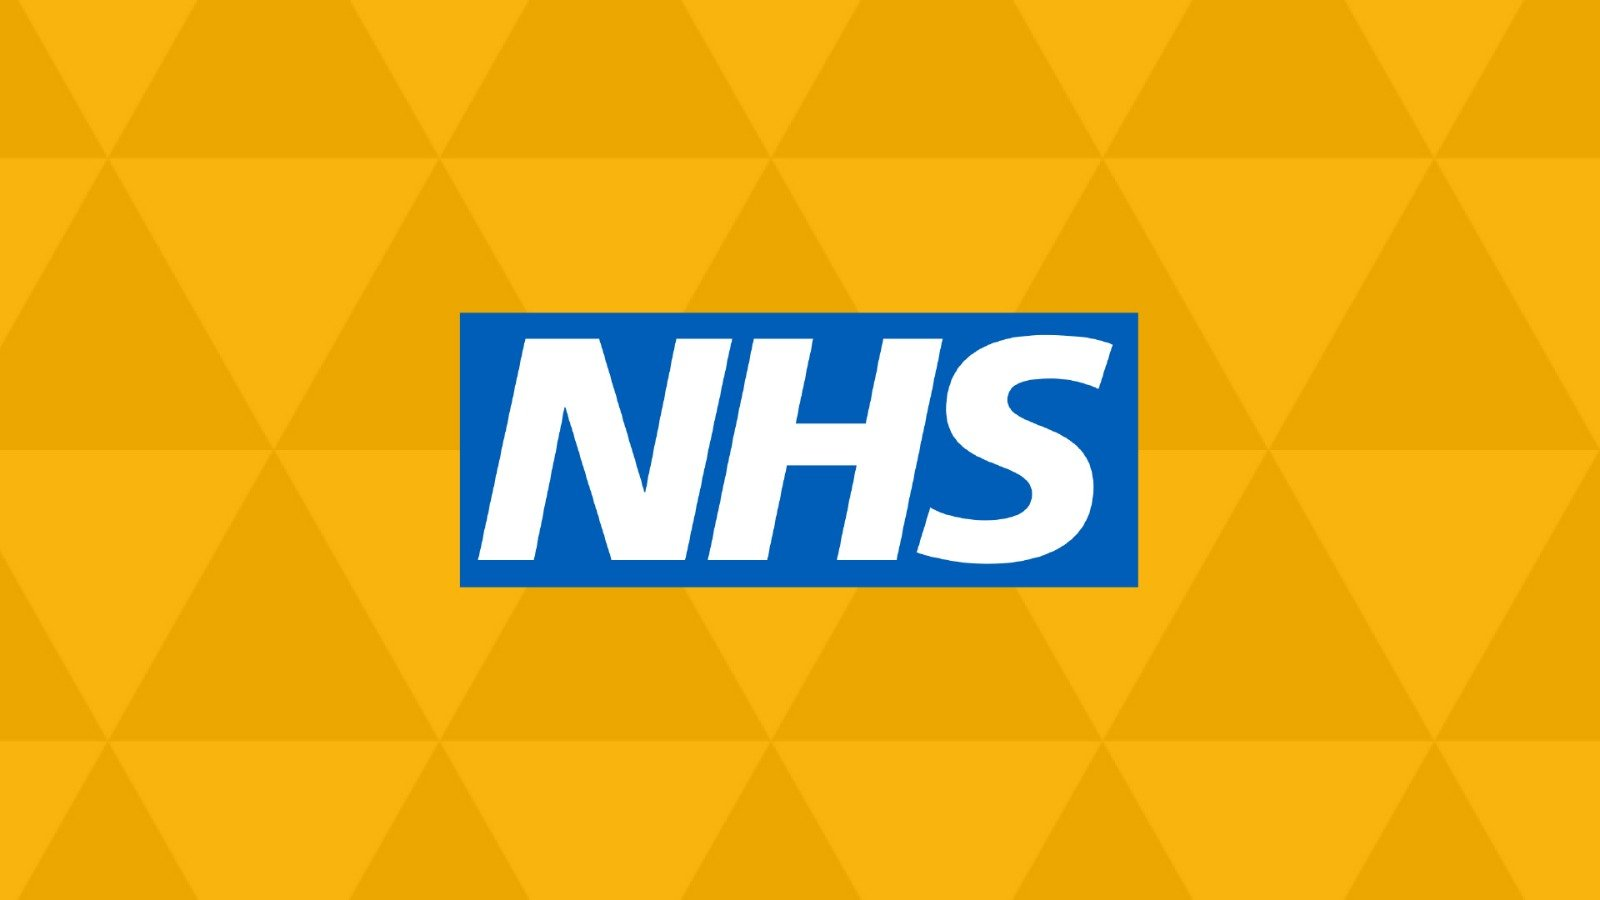 Chicken & Blues to offer NHS workers 50% off during COVID-19 crisis